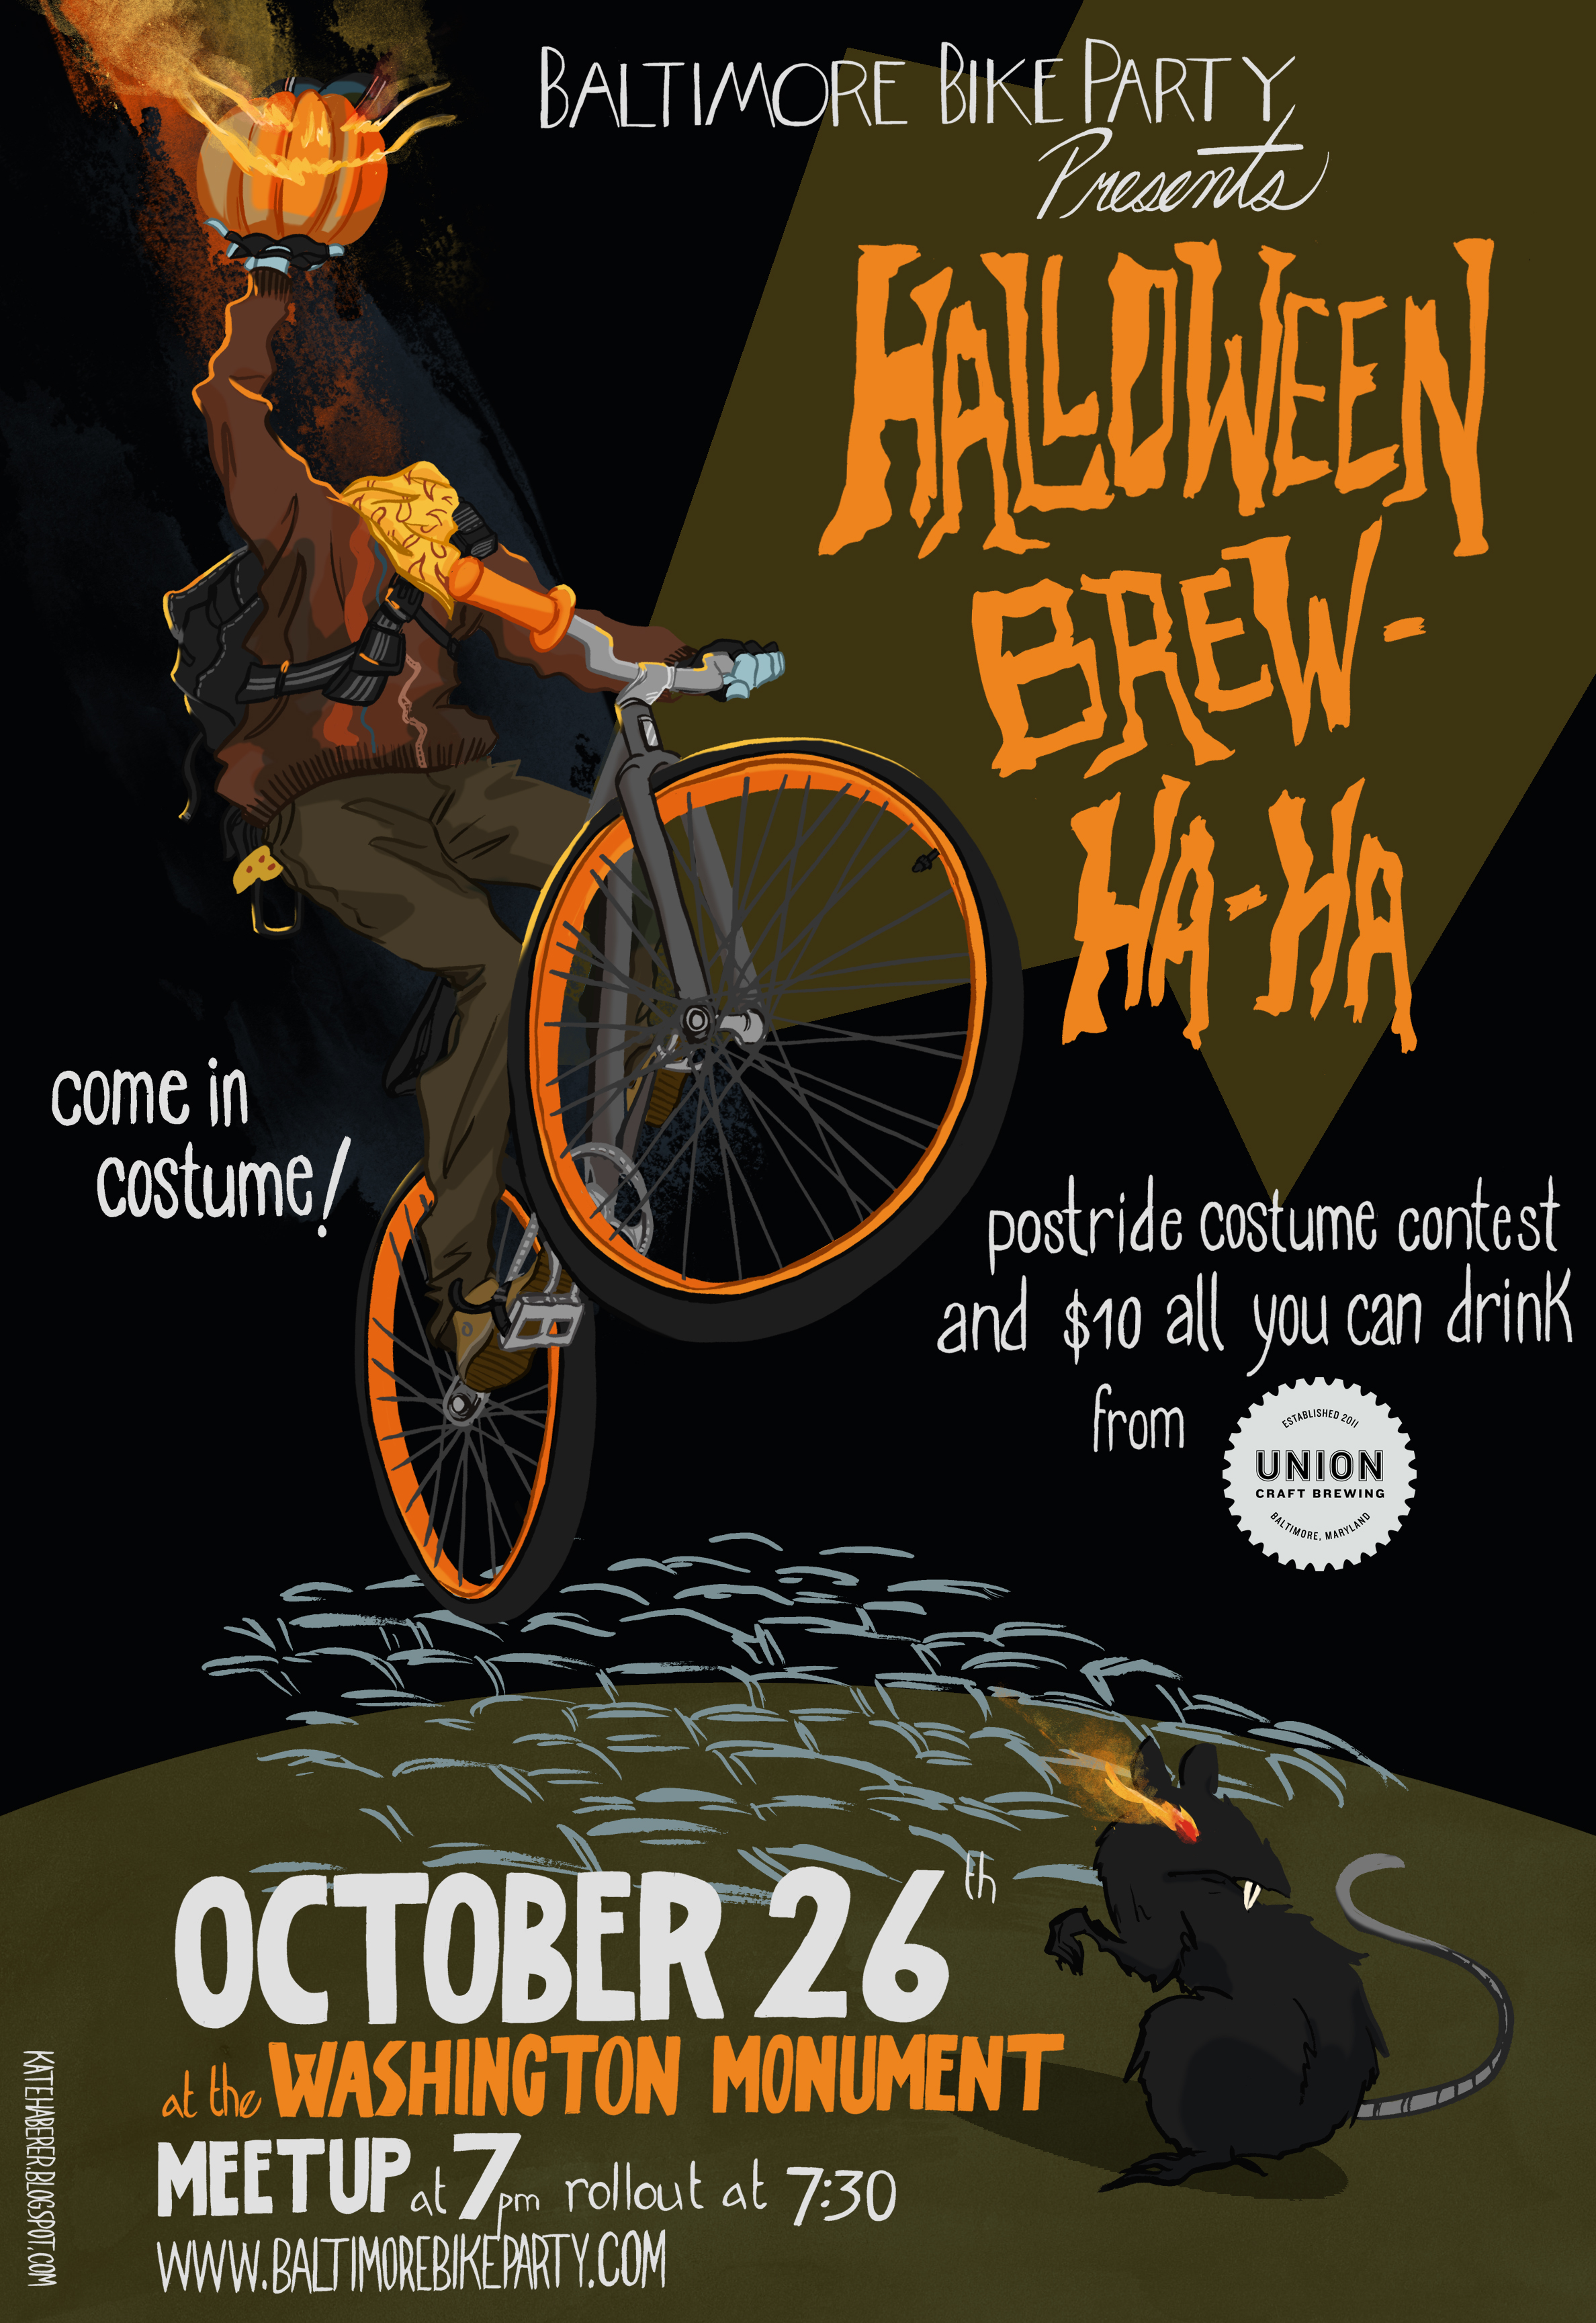 Halloween Brew-Ha-Ha! | Baltimore Bike Party